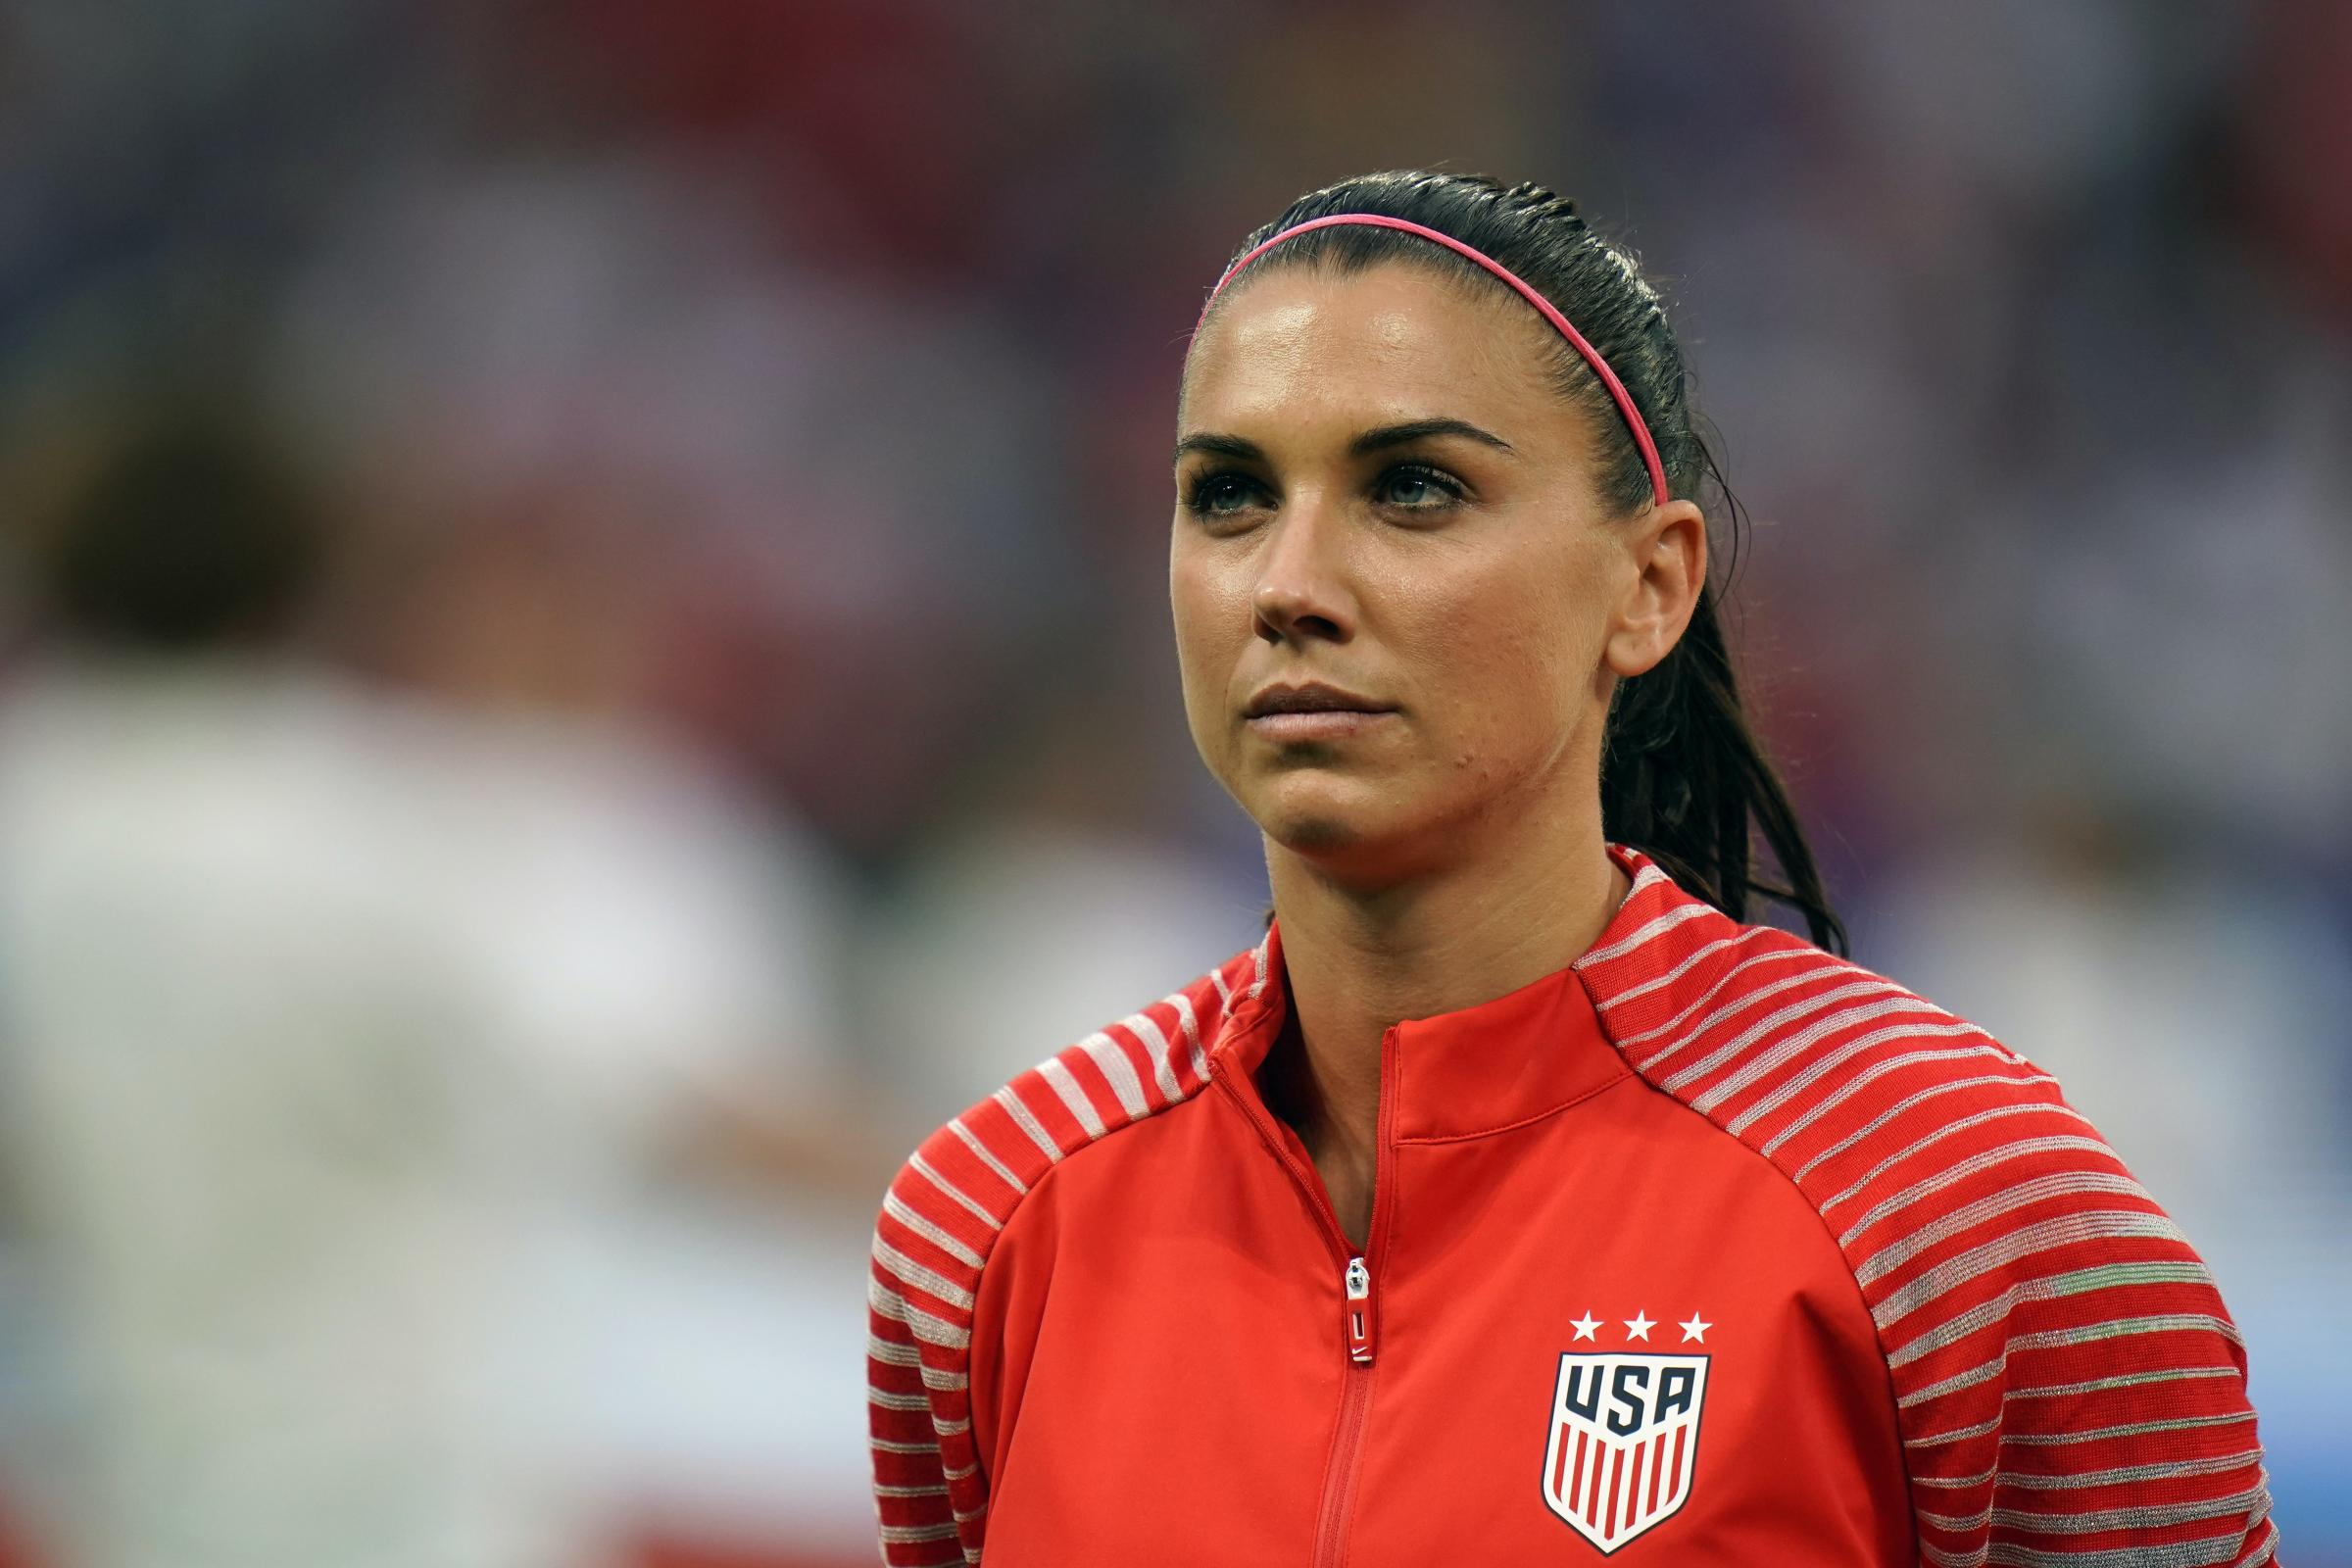 Two Time World Cup Winner Alex Morgan Targets Wsl Success With Tottenham Women Largs And Millport Weekly News